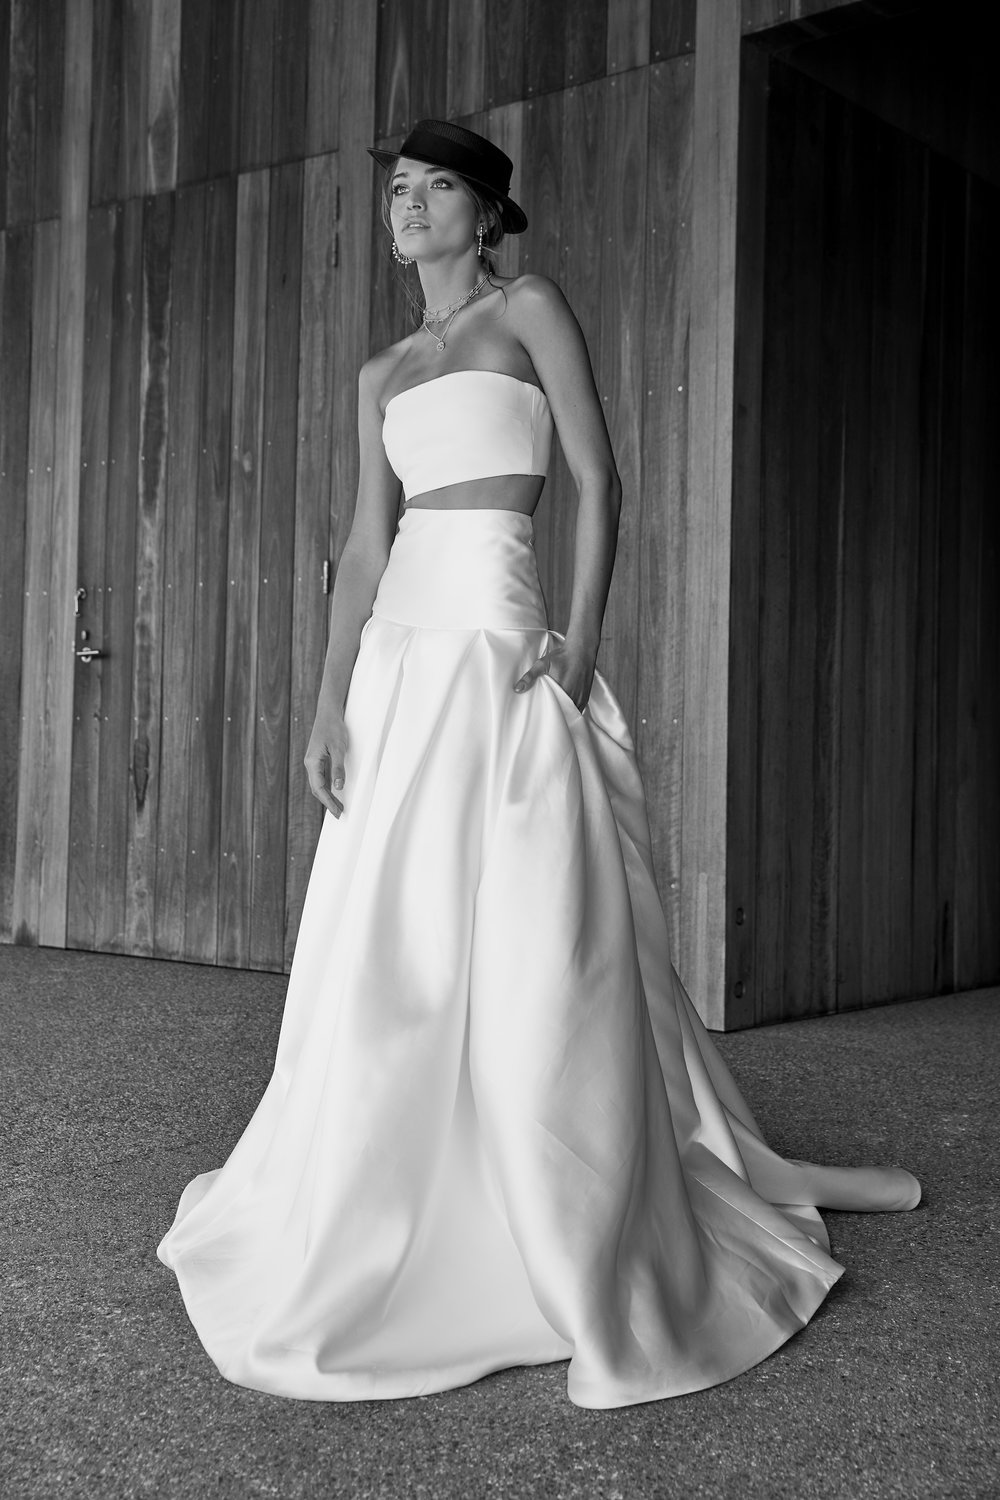 chosen-new-reign-rae-skirt-wedding-dress-side-bw.jpg